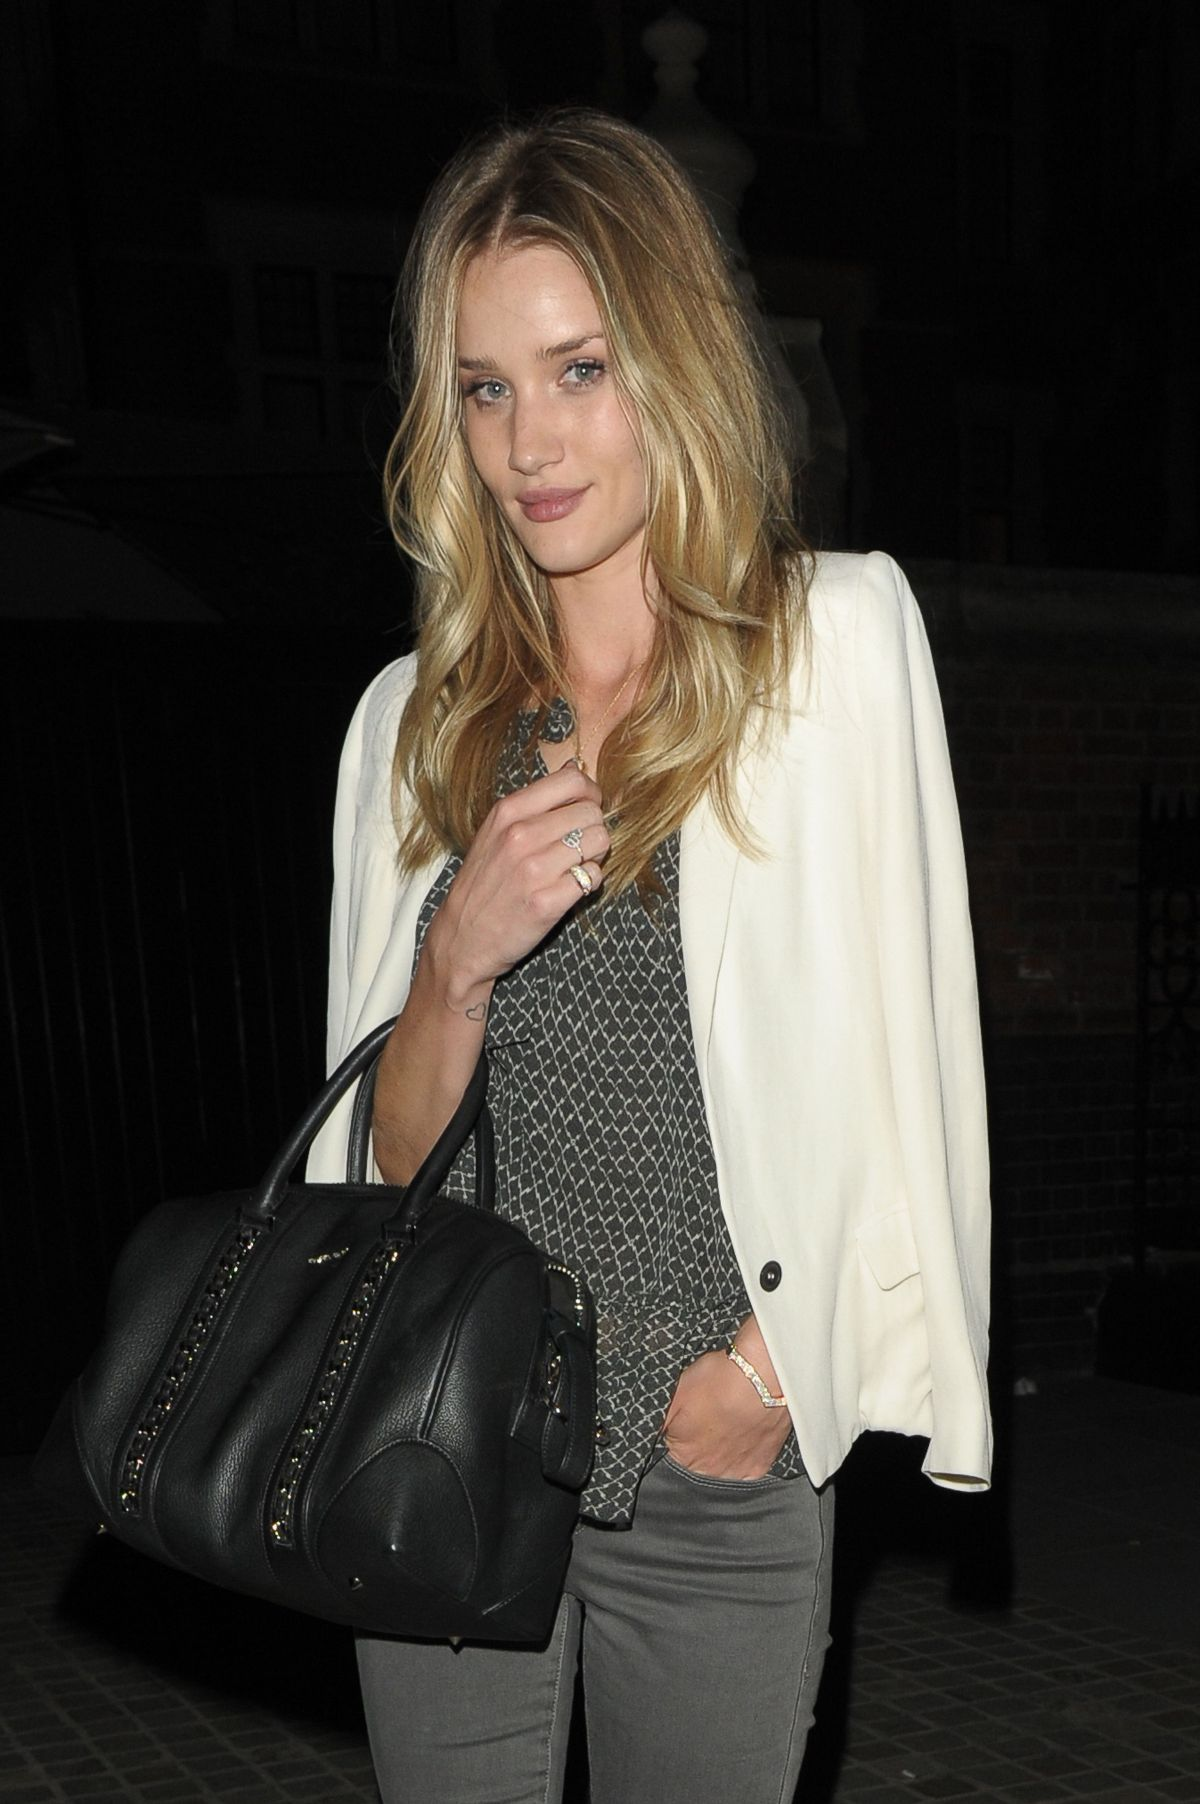 ROSIE HUNTINGTON-WHITELEY Leaves at Chiltern Firehouse in Lodon